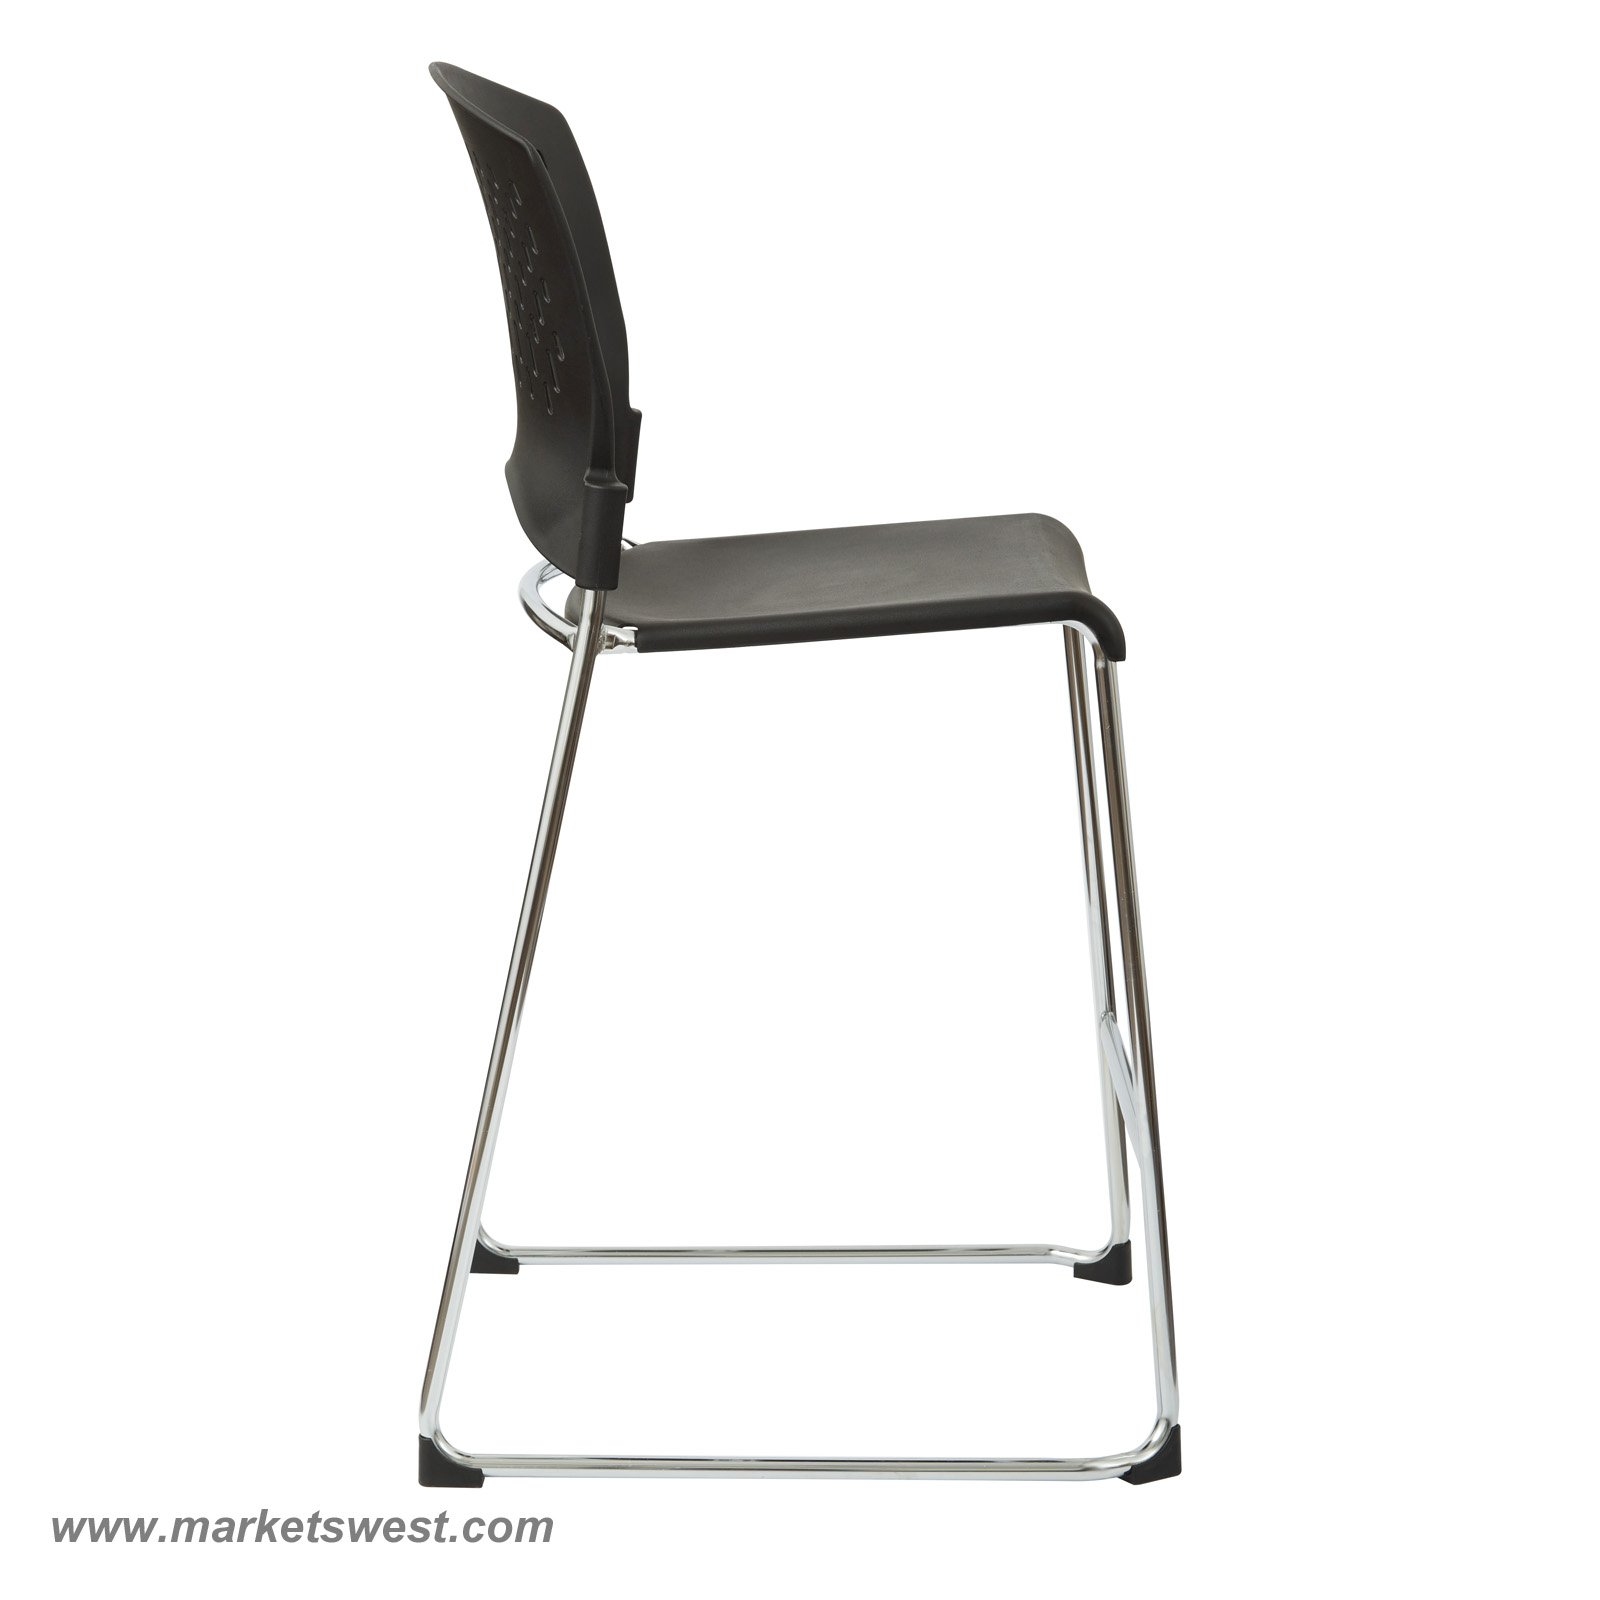 Tall Stacking Chair Stool With Plastic Seat And Back